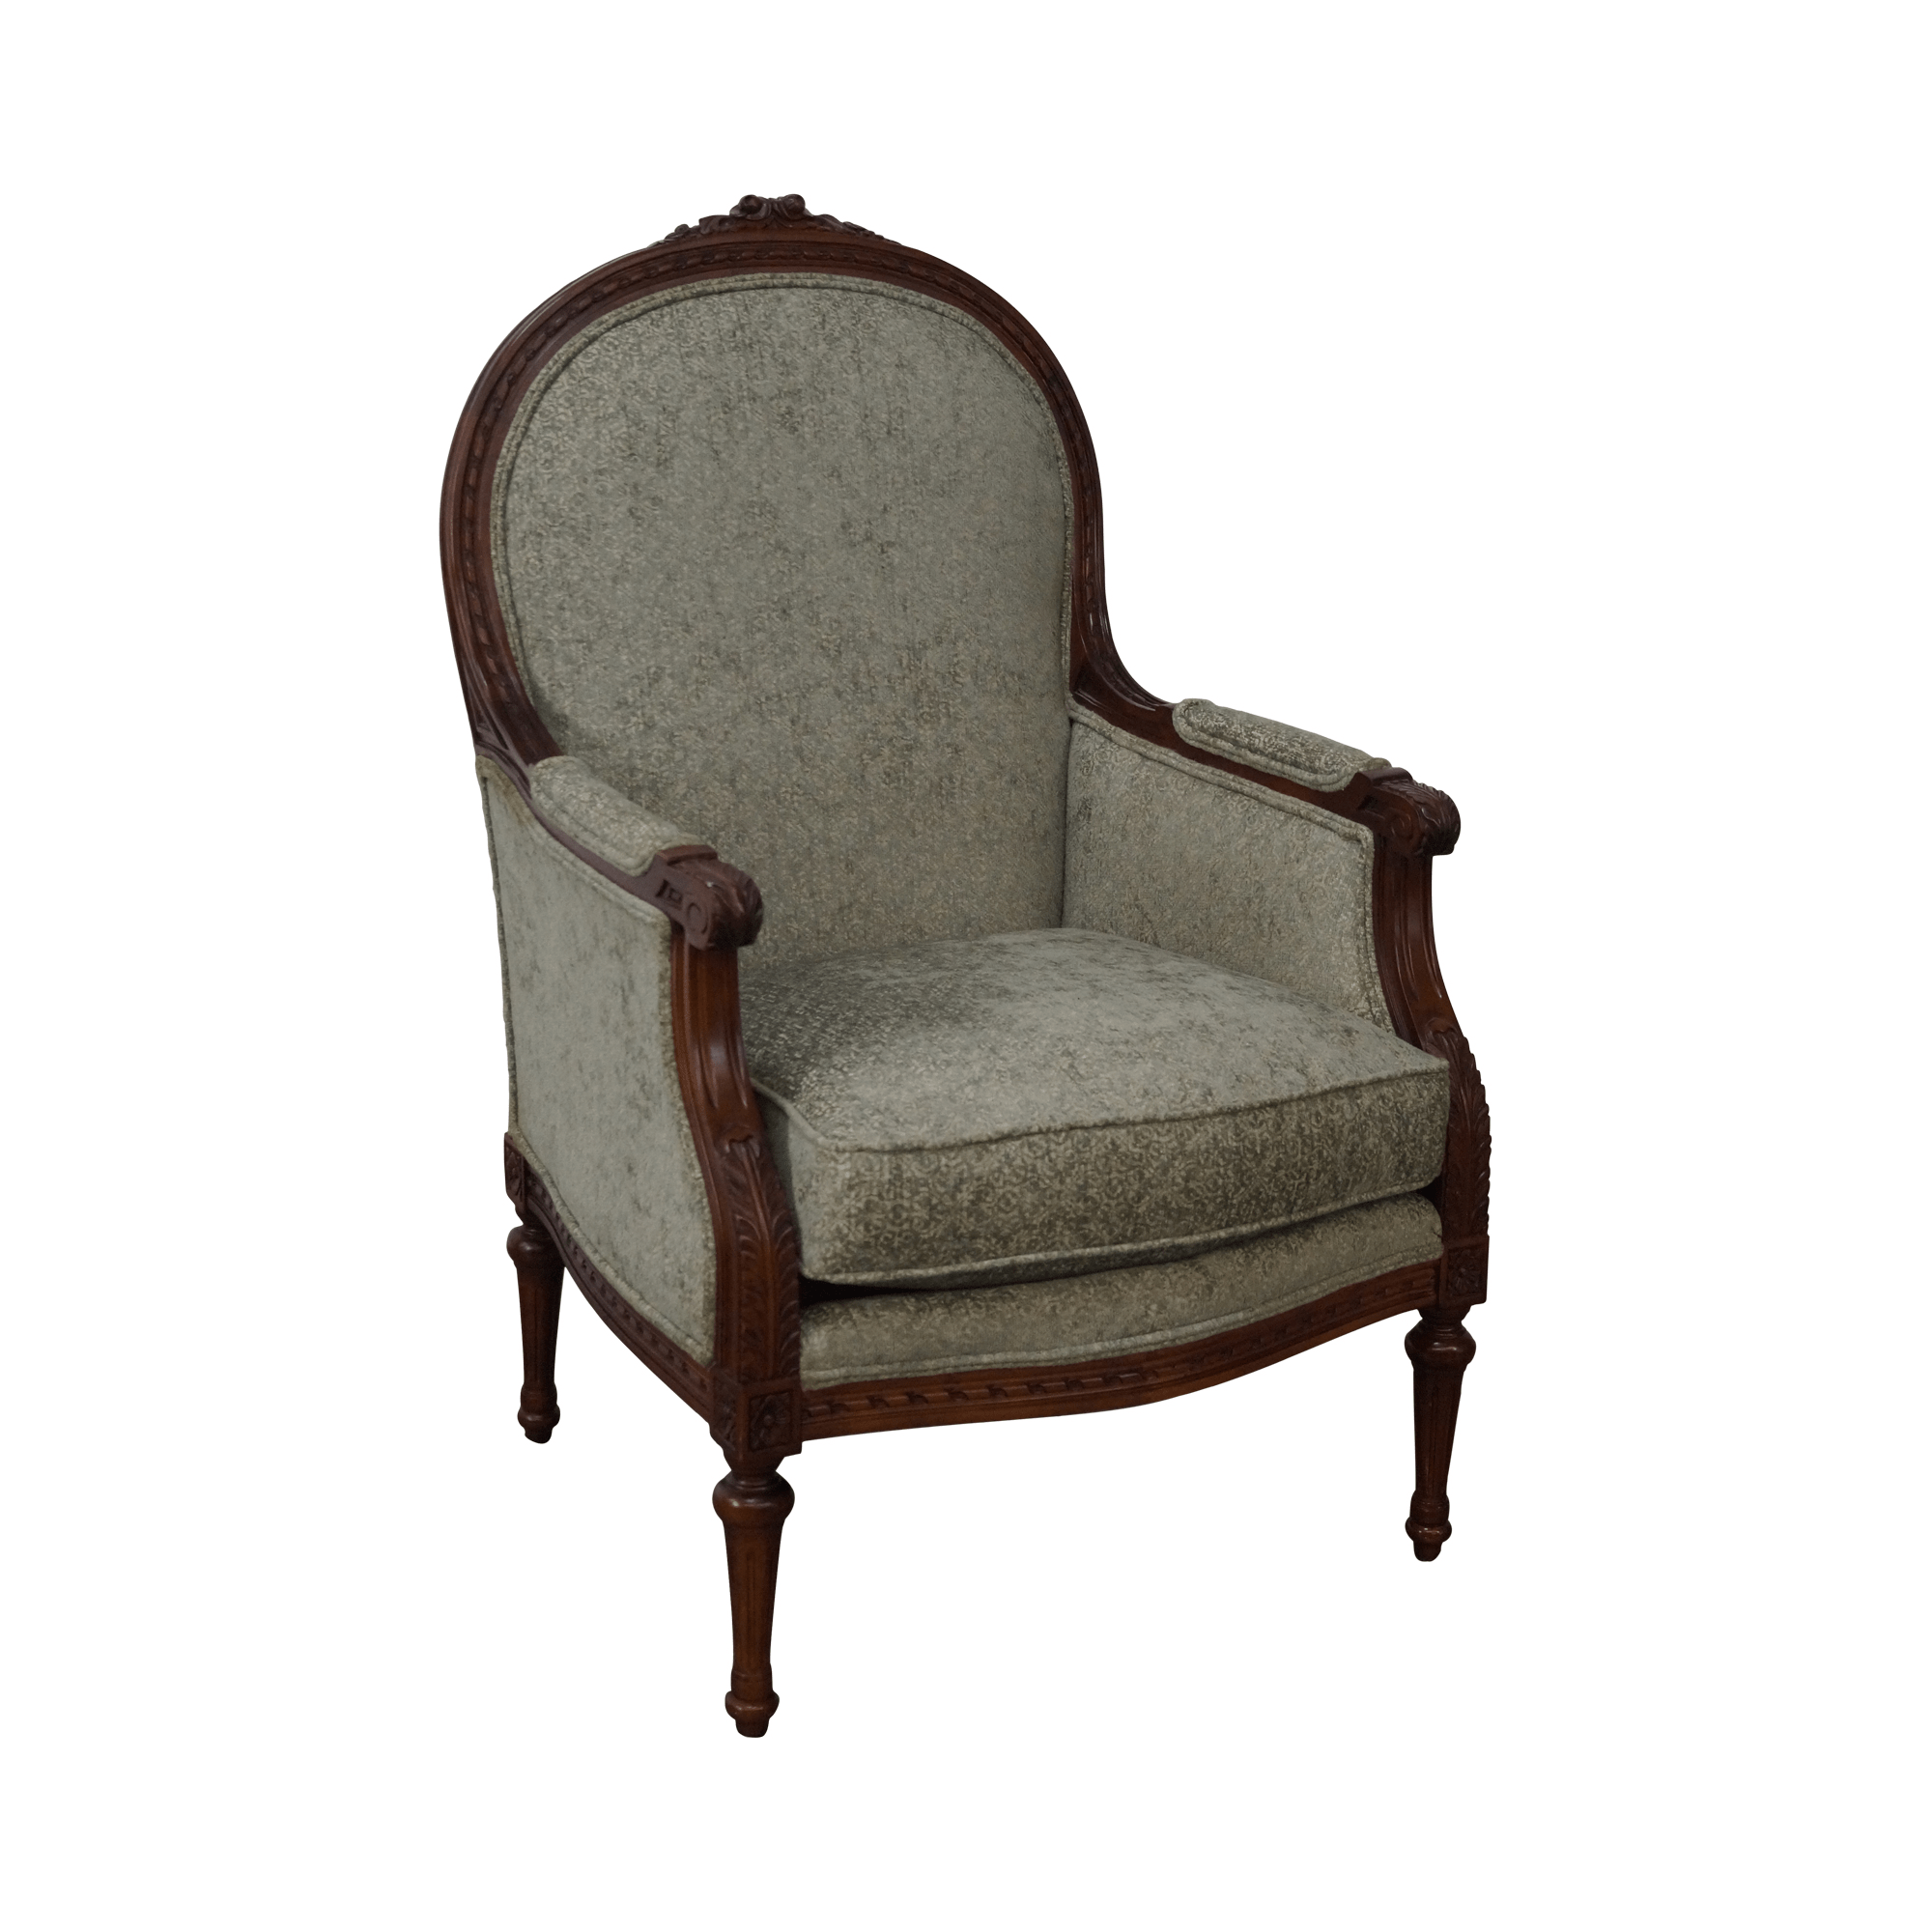 bergere chairs carolina panthers gaming chair thomasville french louis xvi style chairish